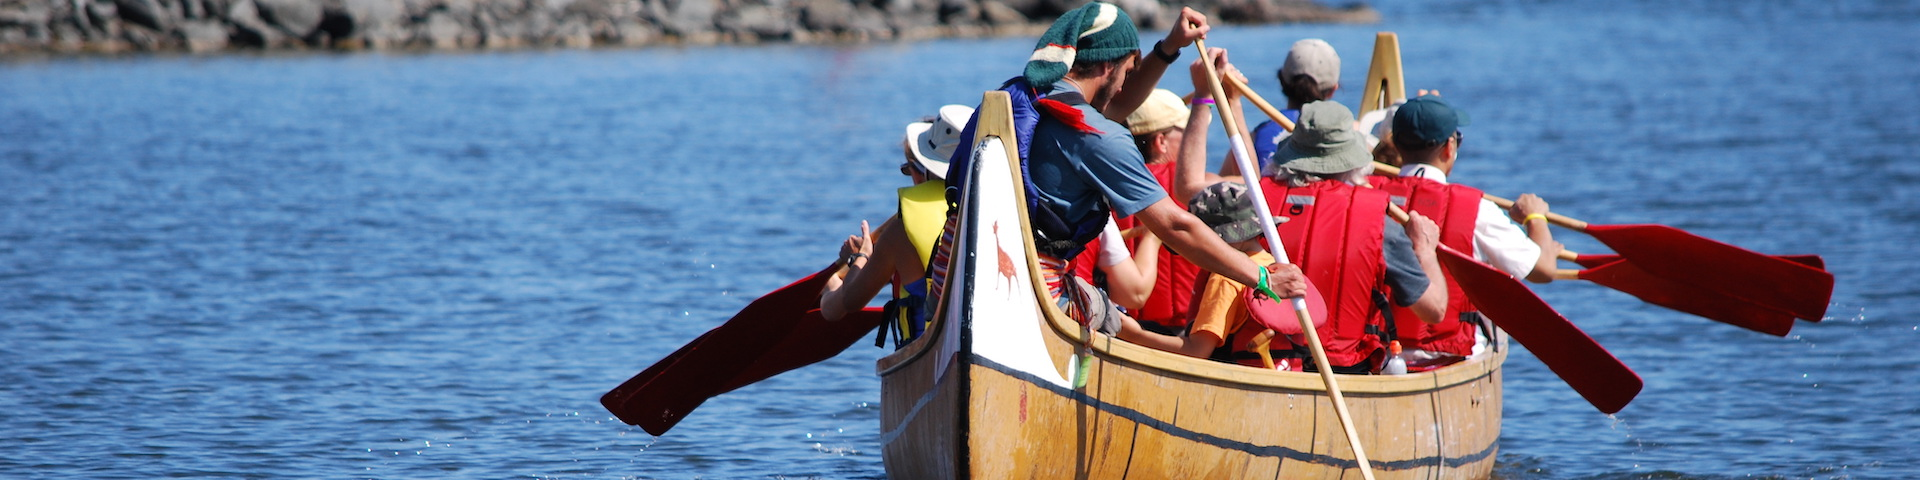 Voyageur Canoe Trips on Lake Superior by Naturally Superior Adventures - Image 240